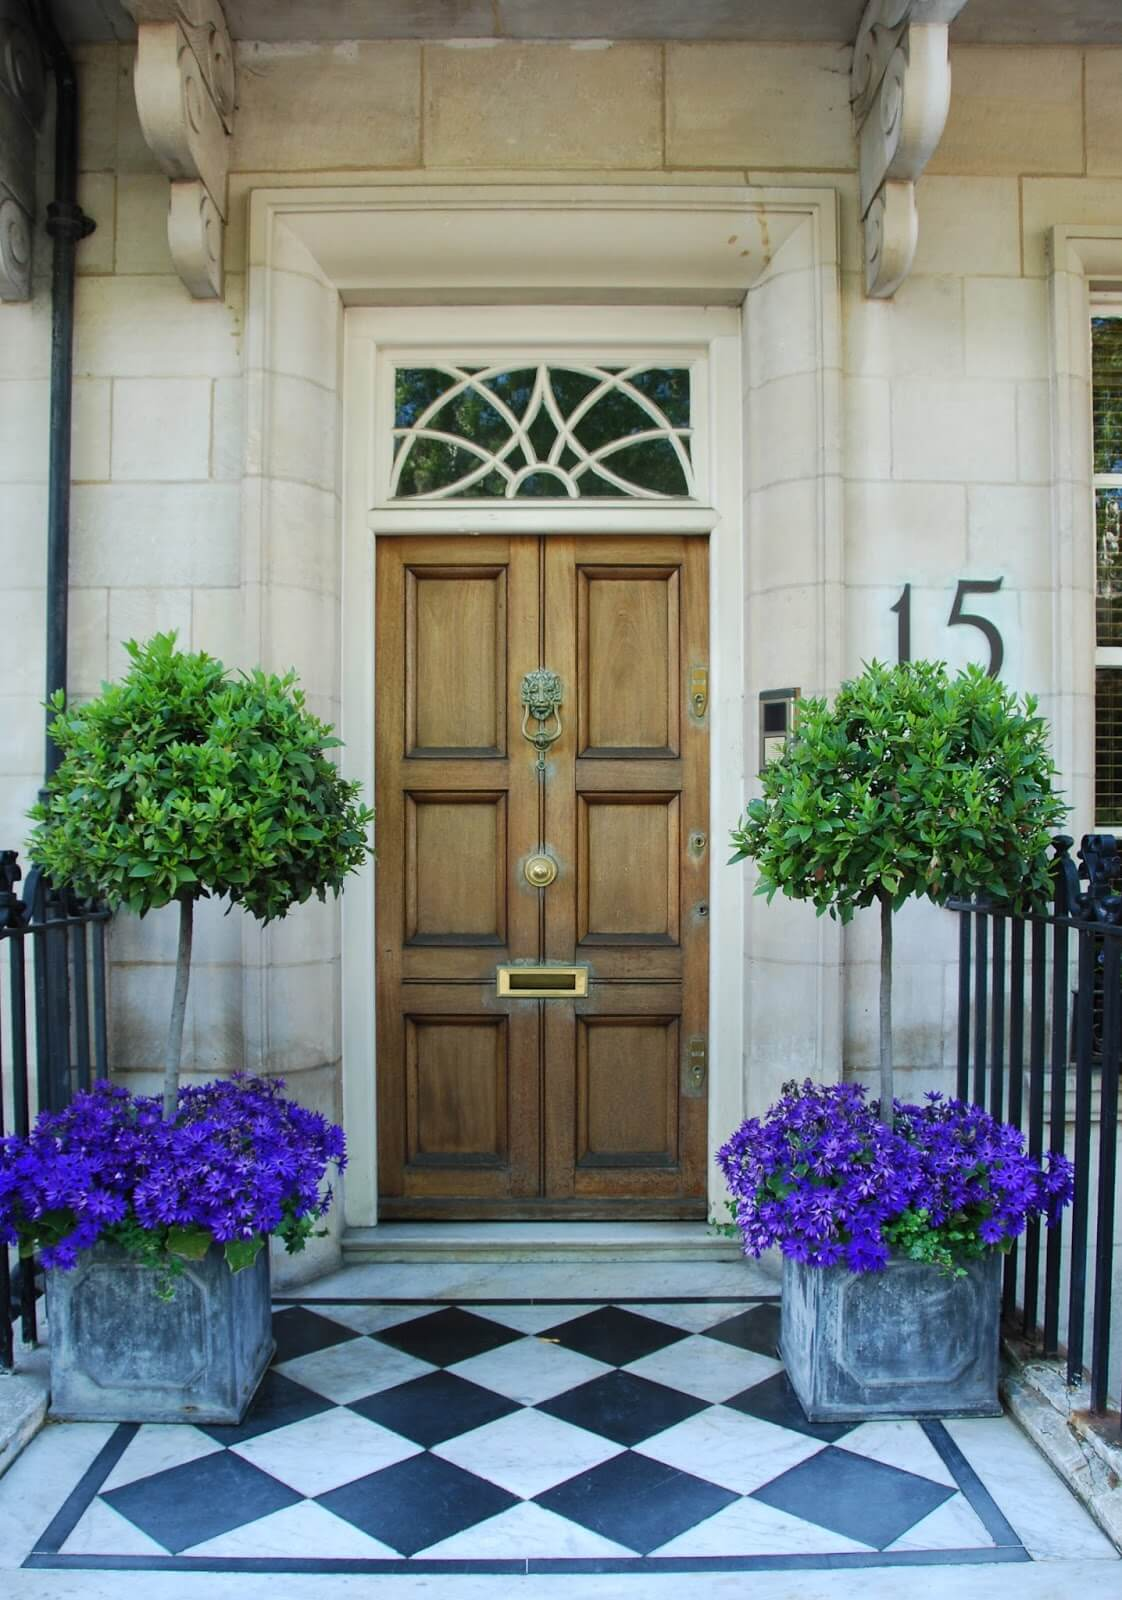 29 Best Front Door Flower Pots Ideas And Designs For 2018